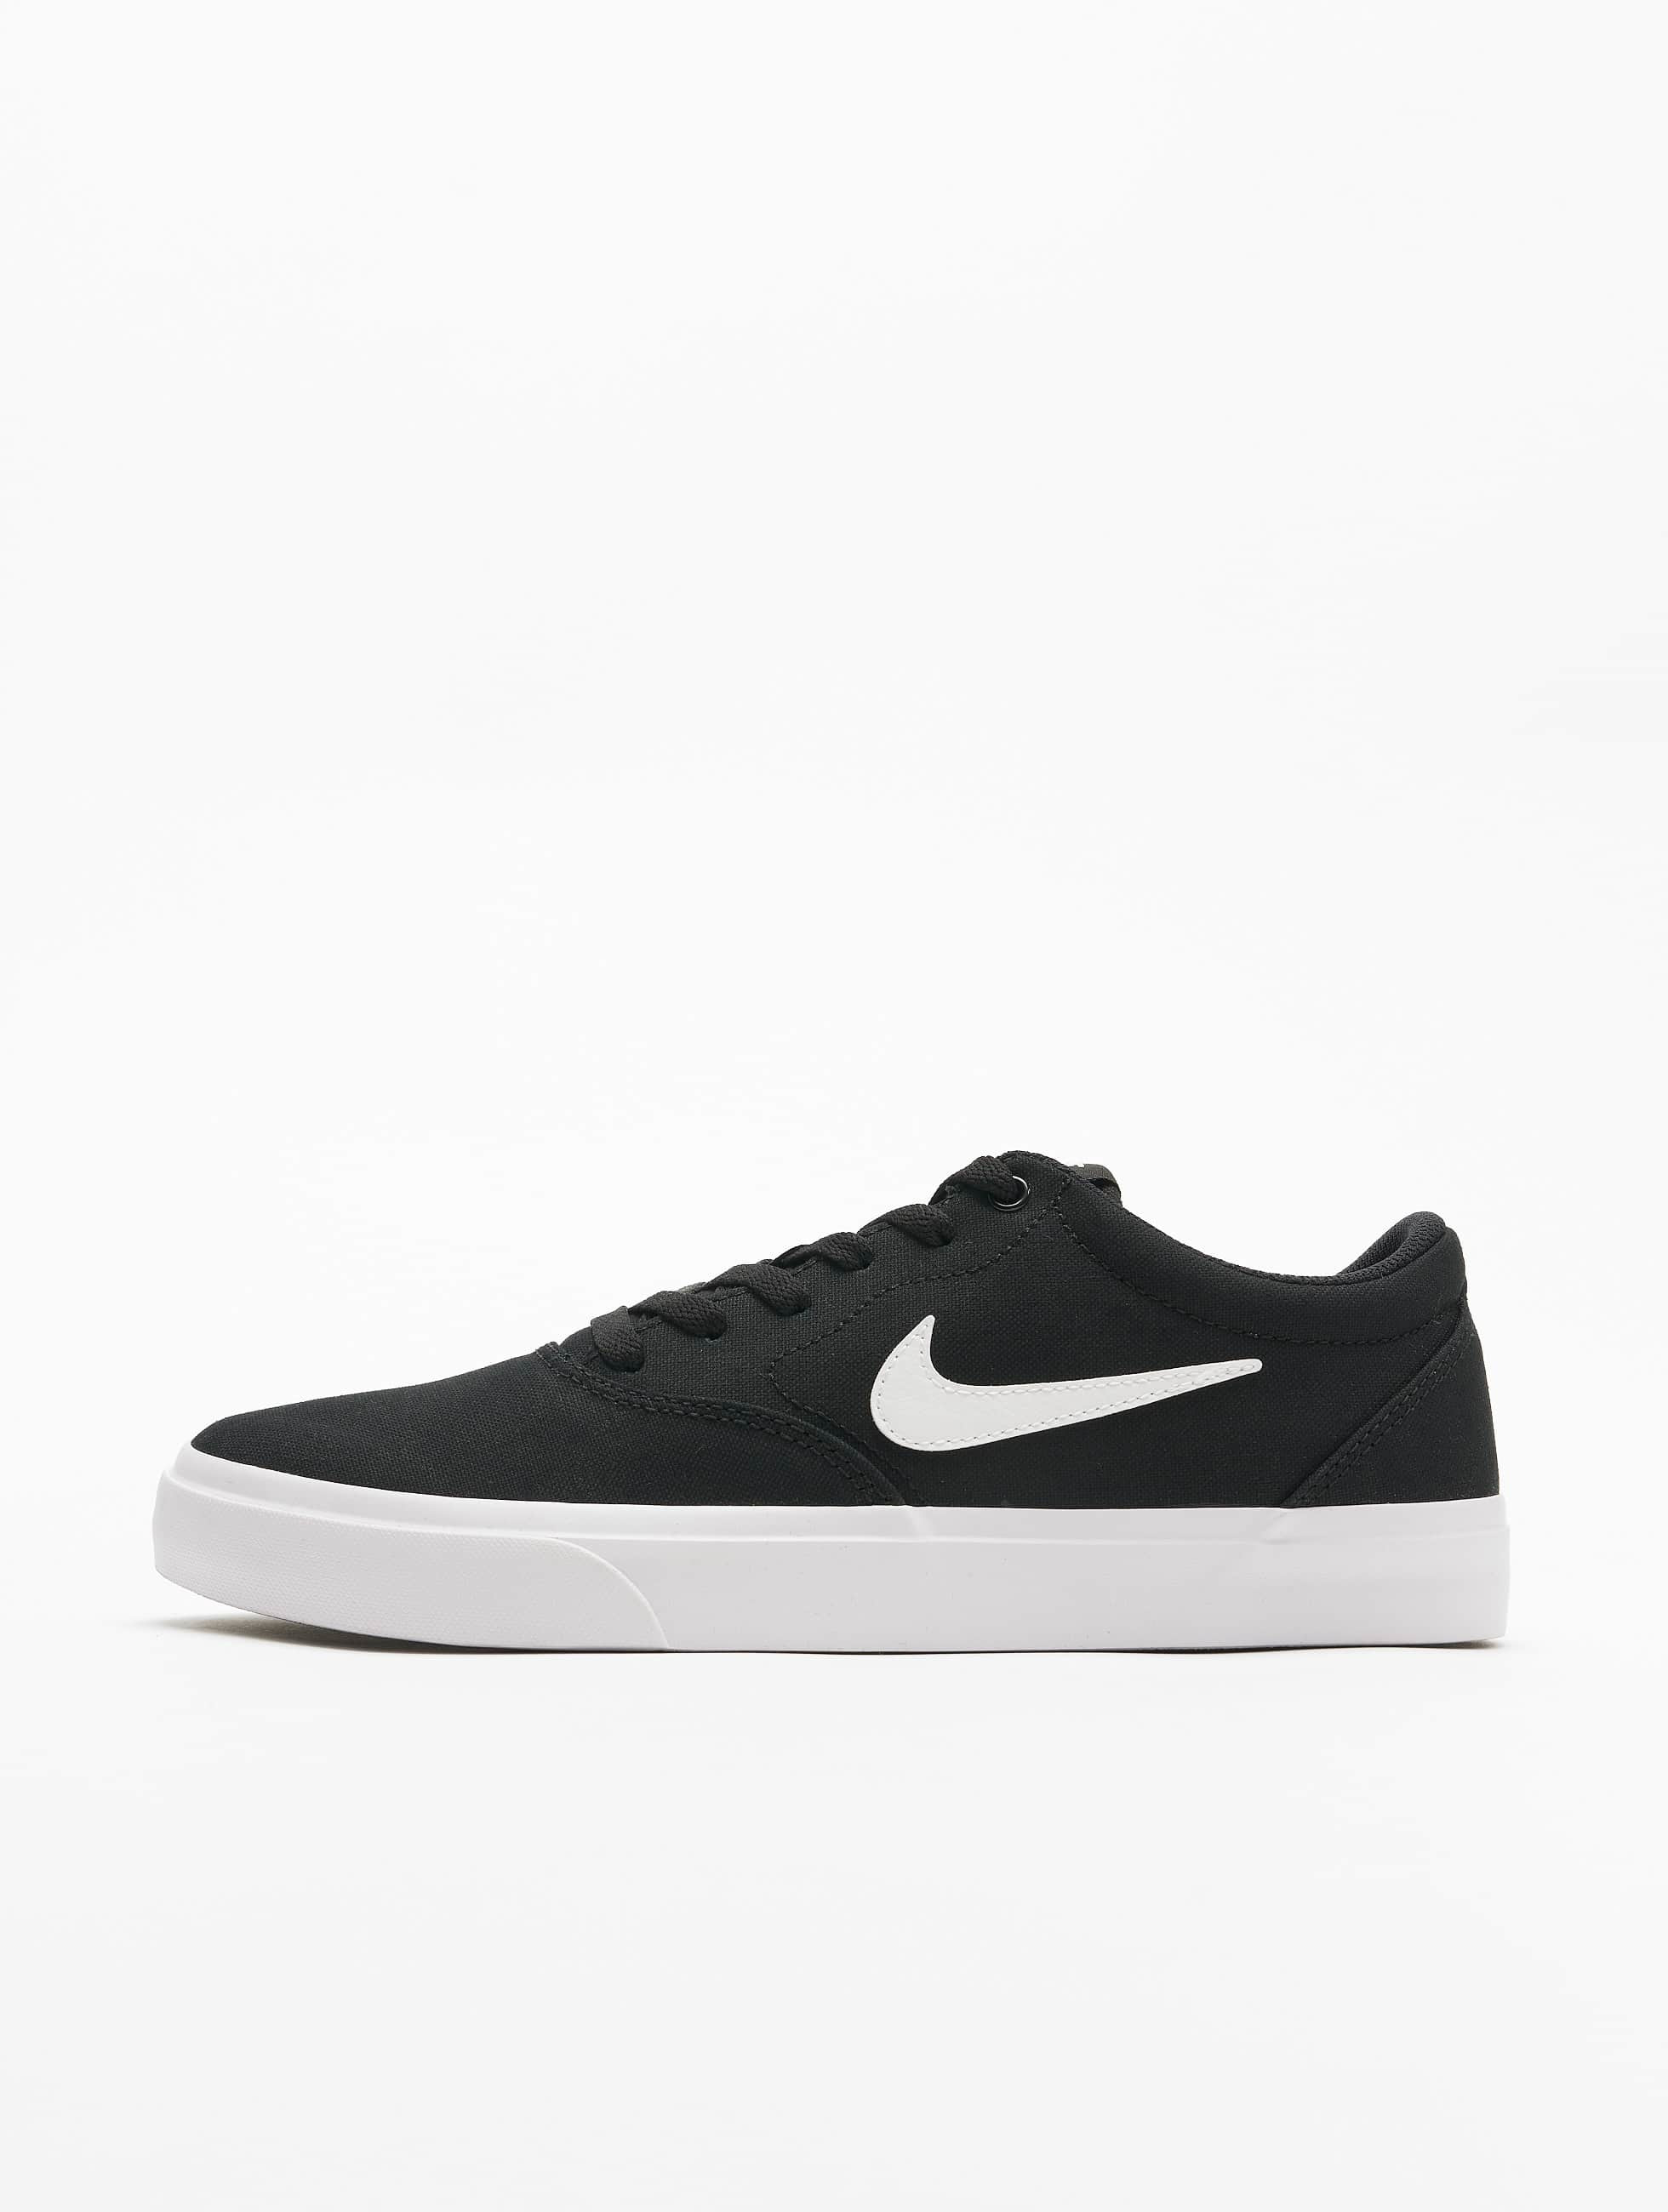 Nike SB Charge Canvas Sneakers Black/White